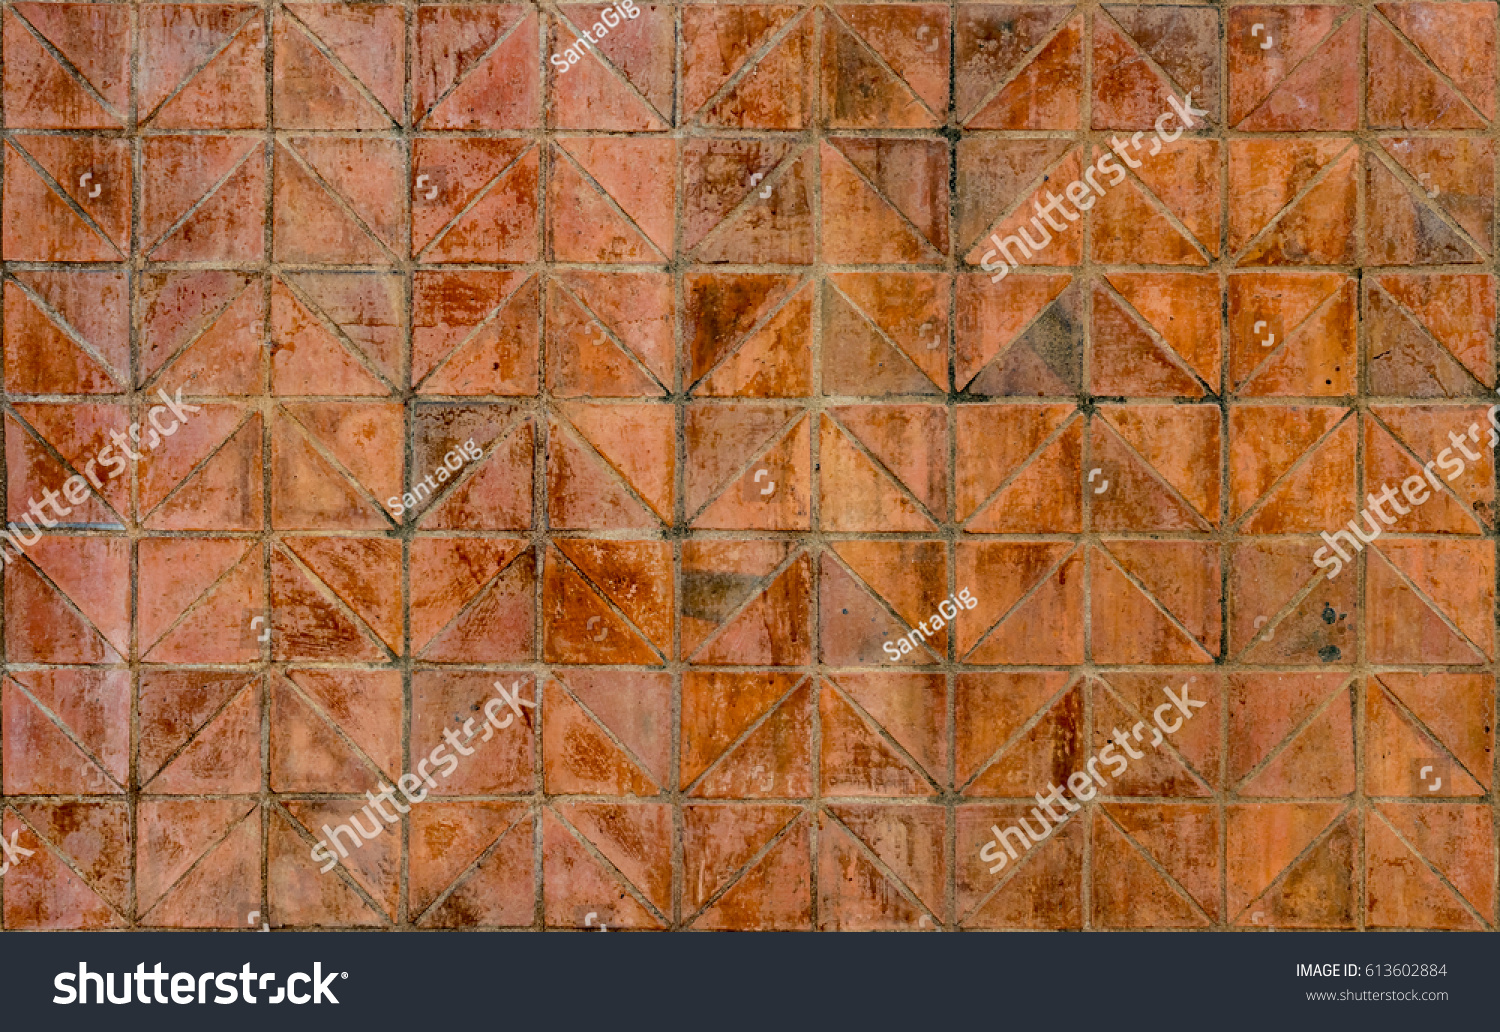 Handmade ceramic tiles choice image tile flooring design ideas old handmade ceramic tile floor stock photo 613602884 shutterstock old handmade ceramic tile floor doublecrazyfo choice dailygadgetfo Gallery